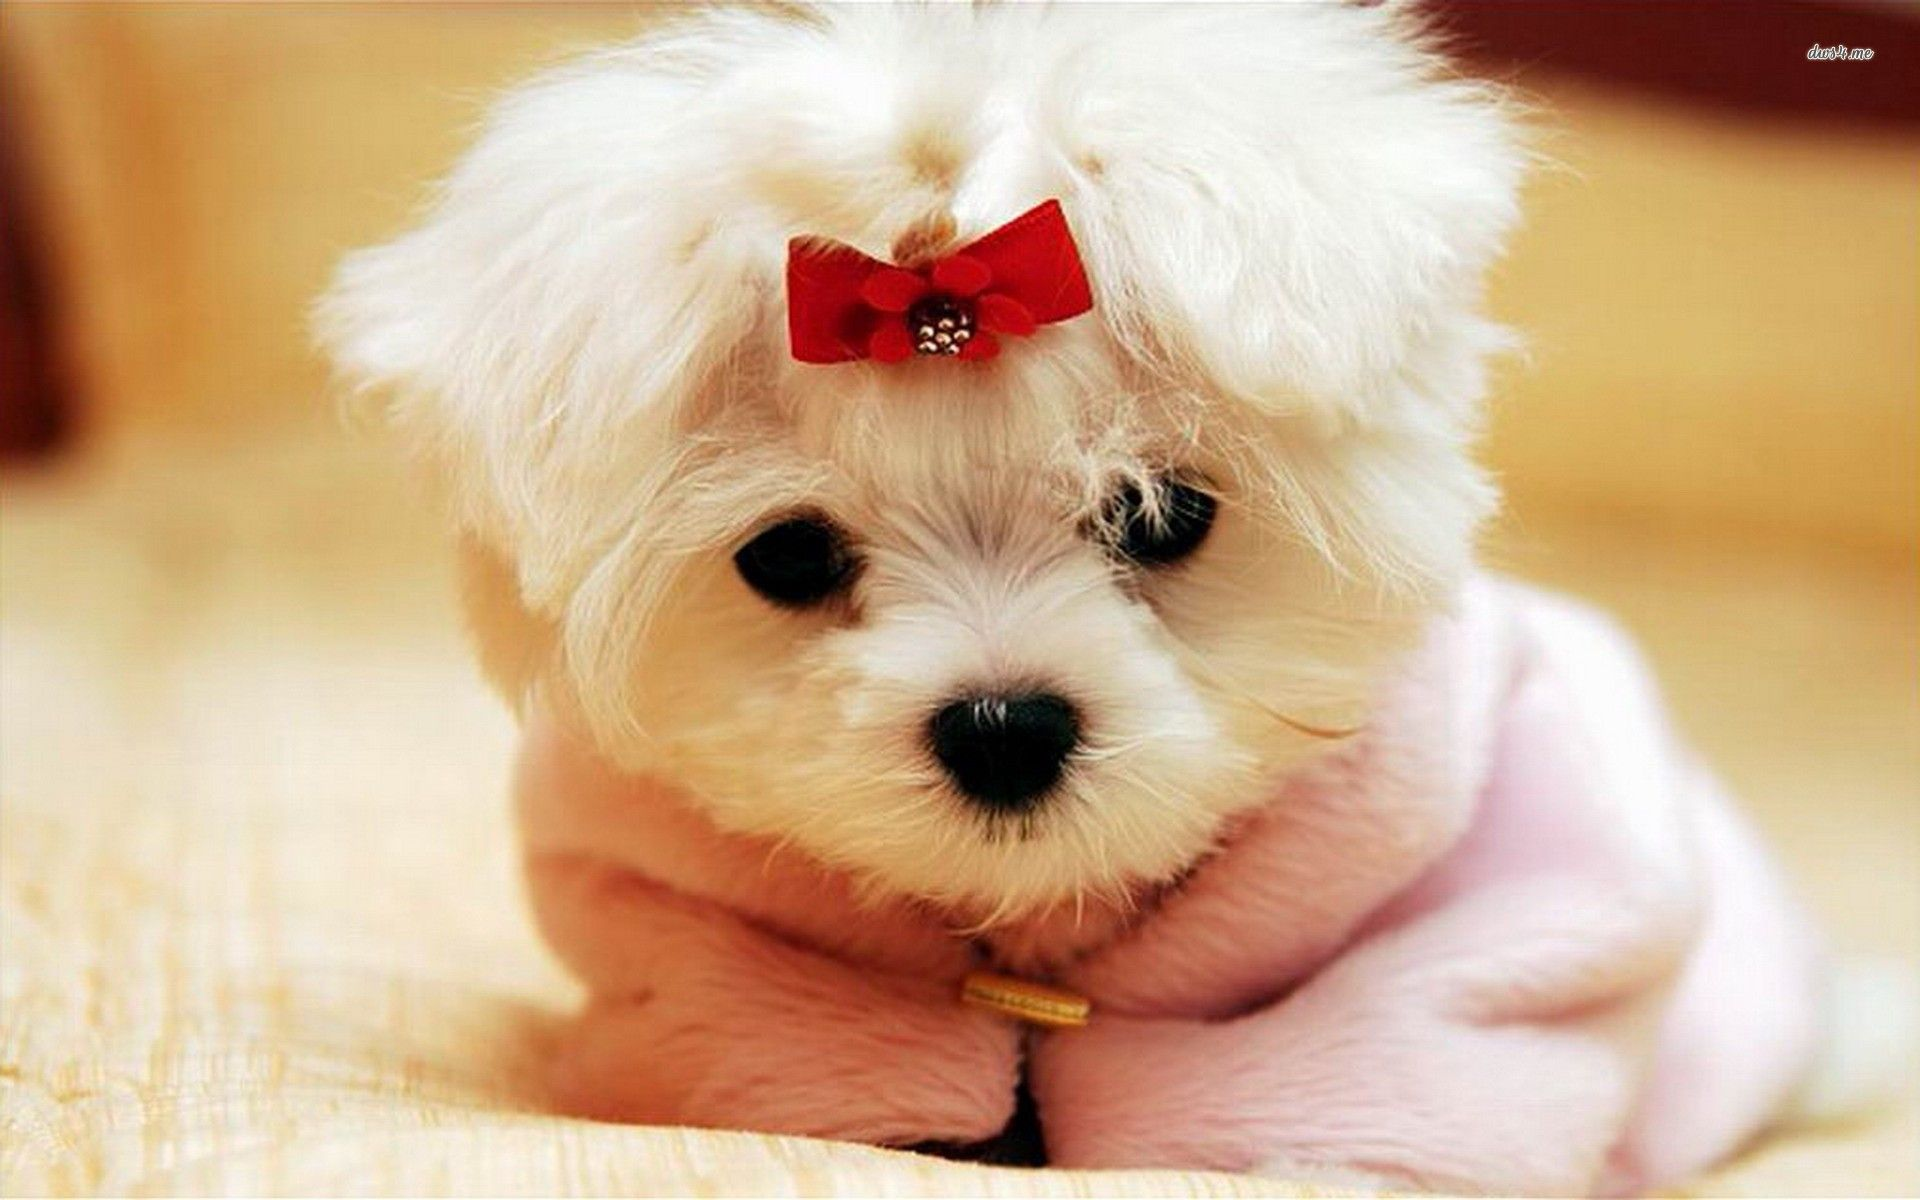 cute puppies 4 390189 high definition wallpapers wallalay